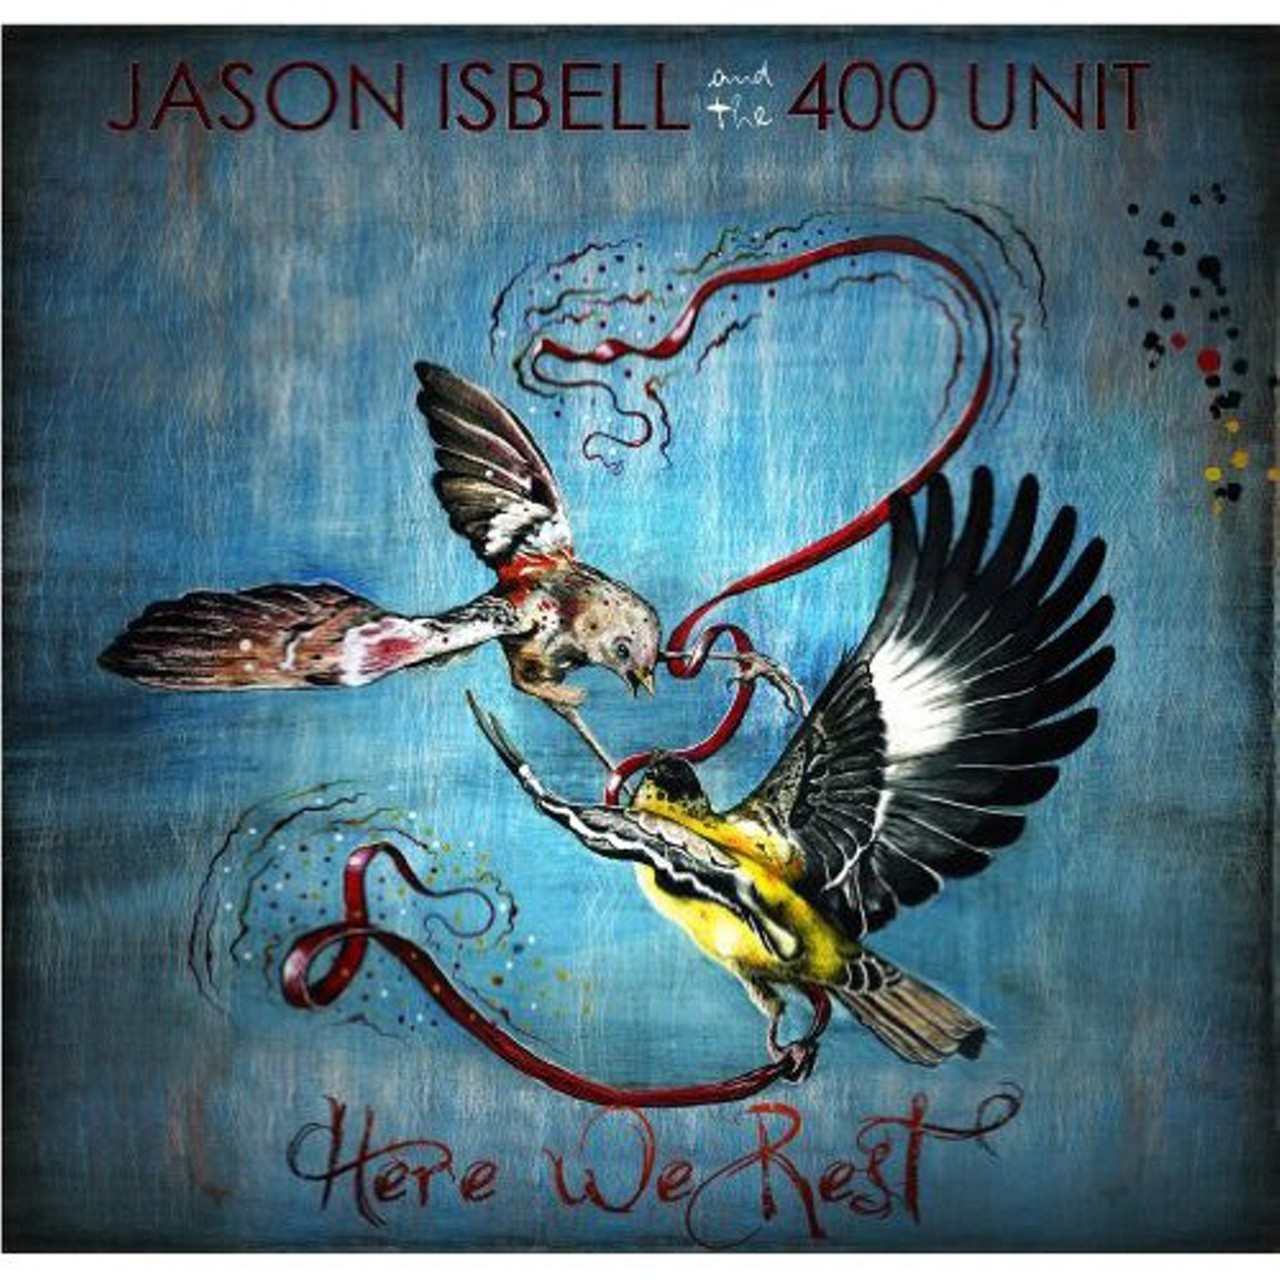 Cd review jason isbell and the 400 unit cd reviews for Decoration day jason isbell